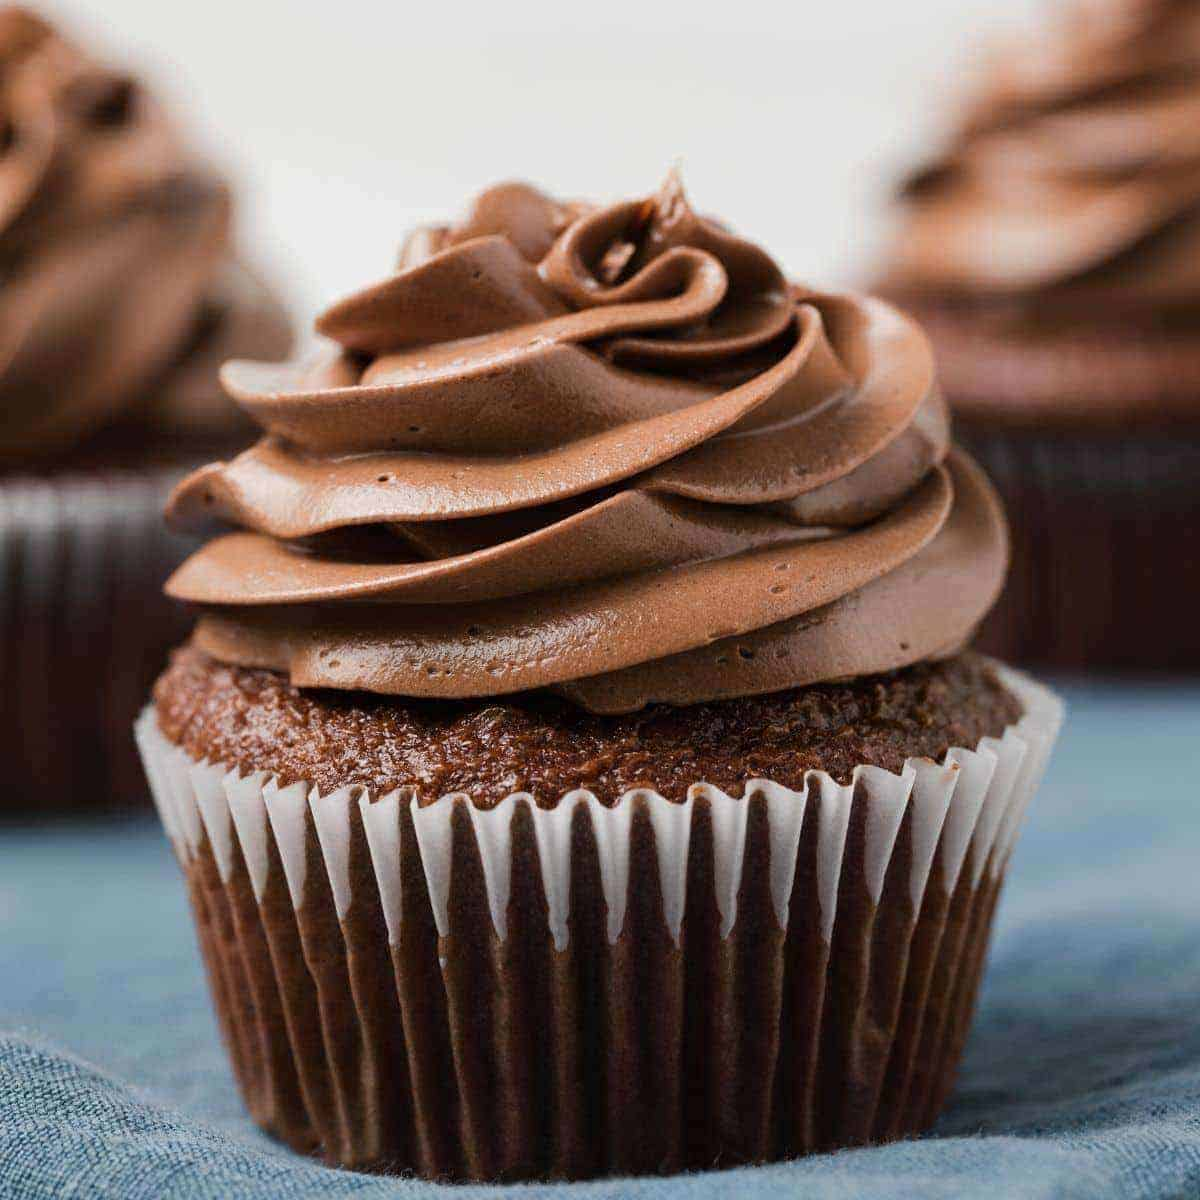 side view of chocolate cupcake with chocolate Swiss frosting